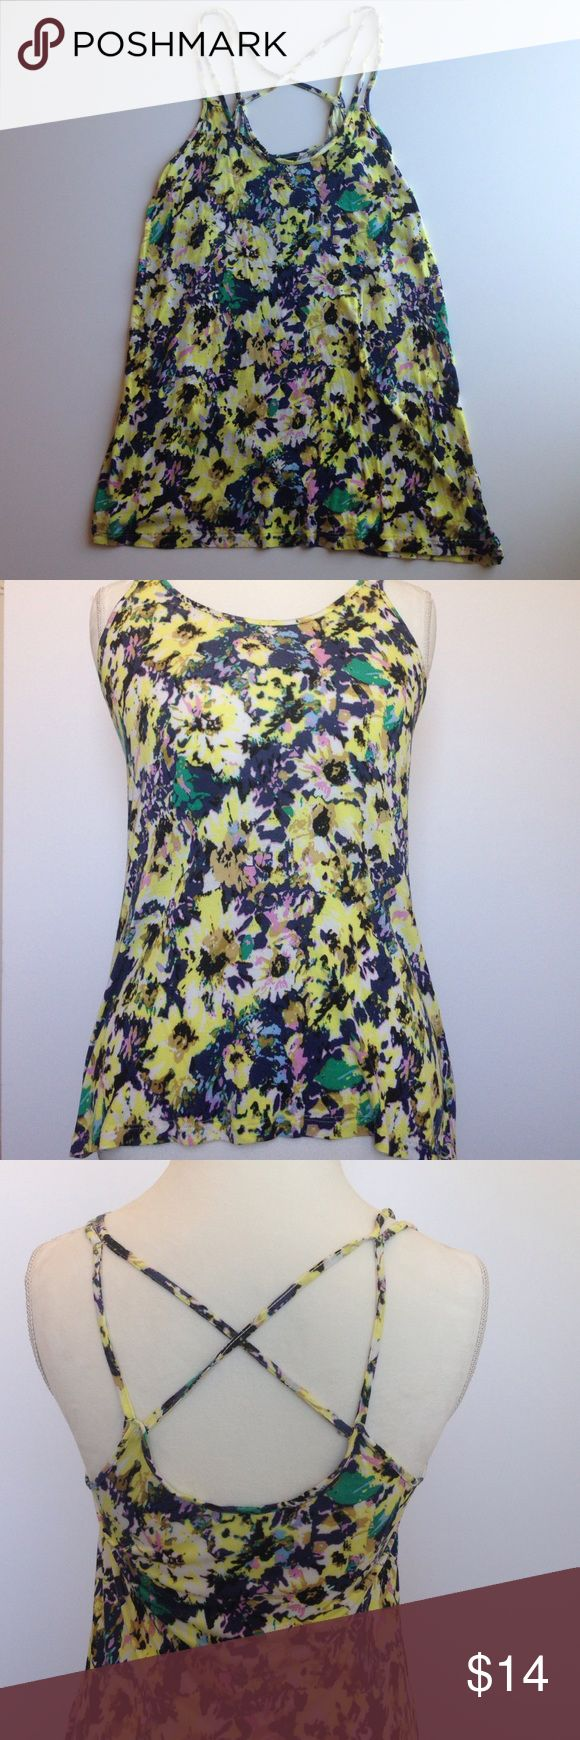 Yellow floral strappy top Lightly worn but in great condition! Top is flowy and flattering. Soft material. No trades H&M Tops Tank Tops